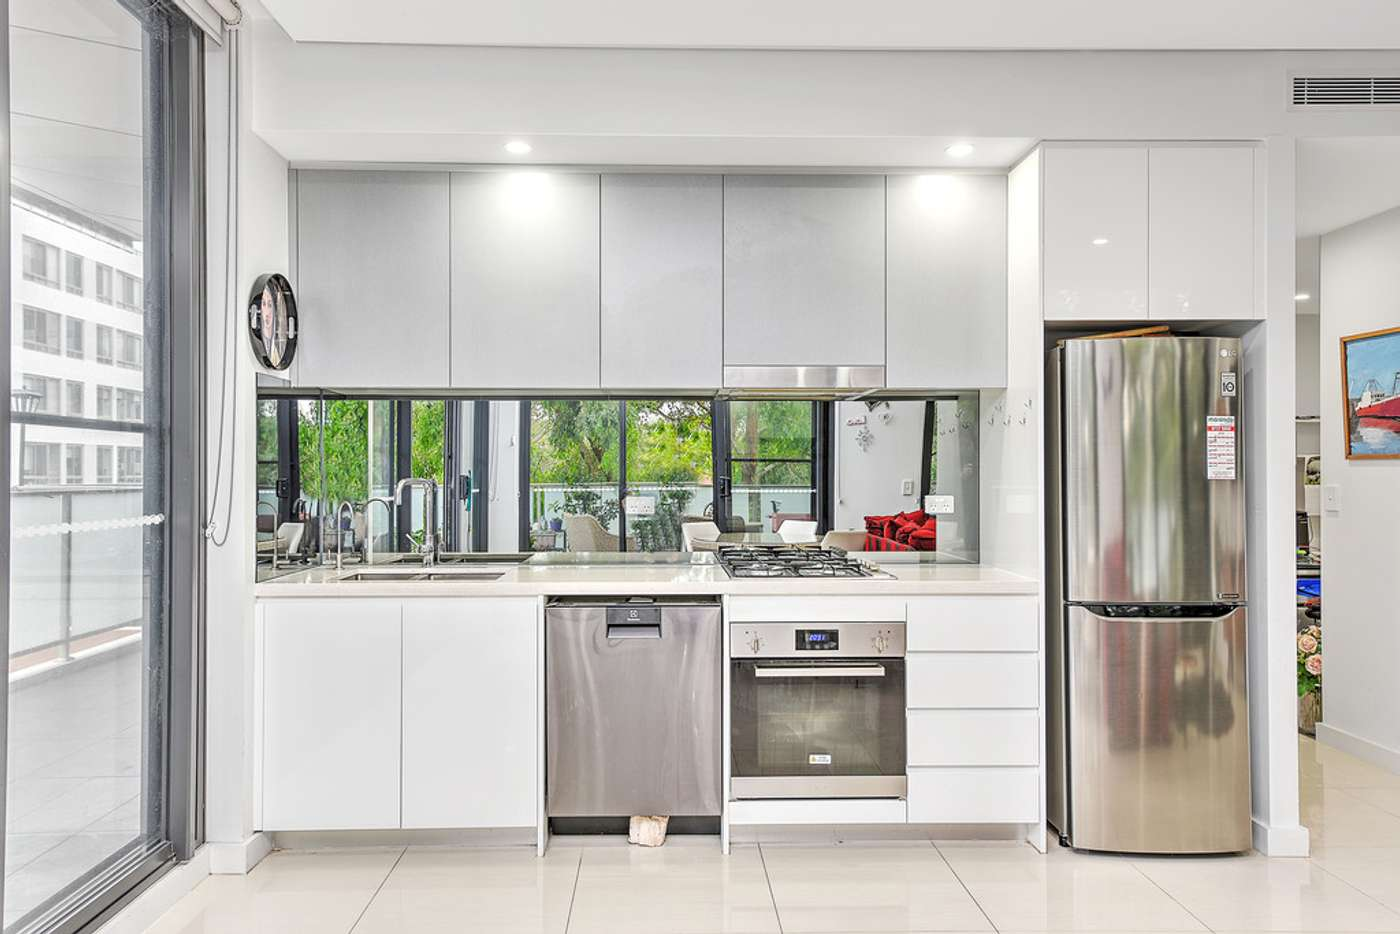 Main view of Homely apartment listing, 5501/1a Morton Street, Parramatta NSW 2150